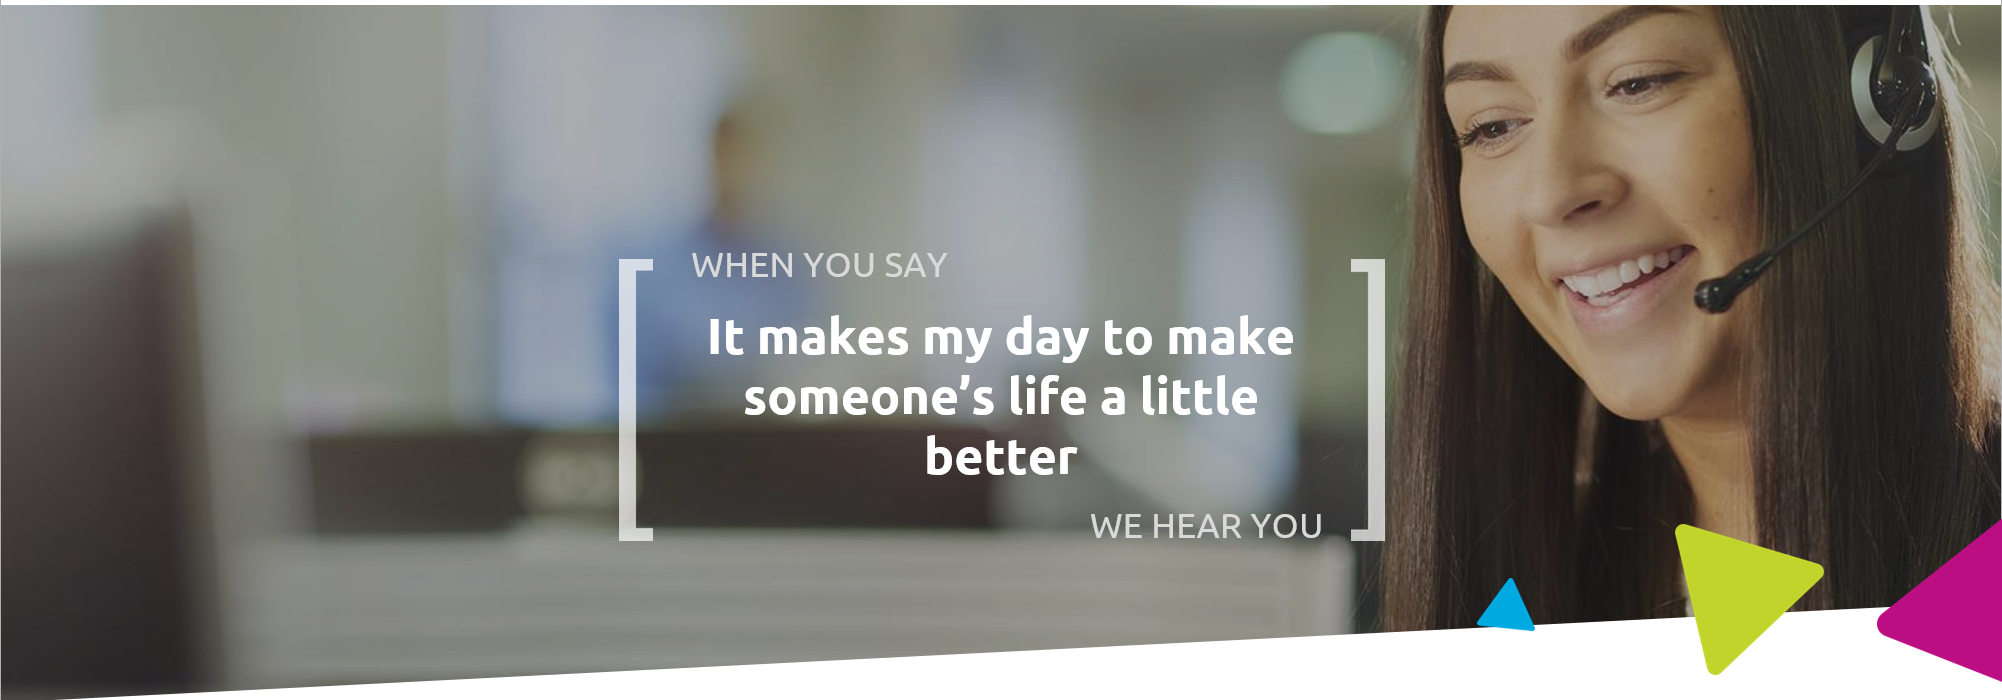 When you say it makes my day to make someone's life a little better, we hear you